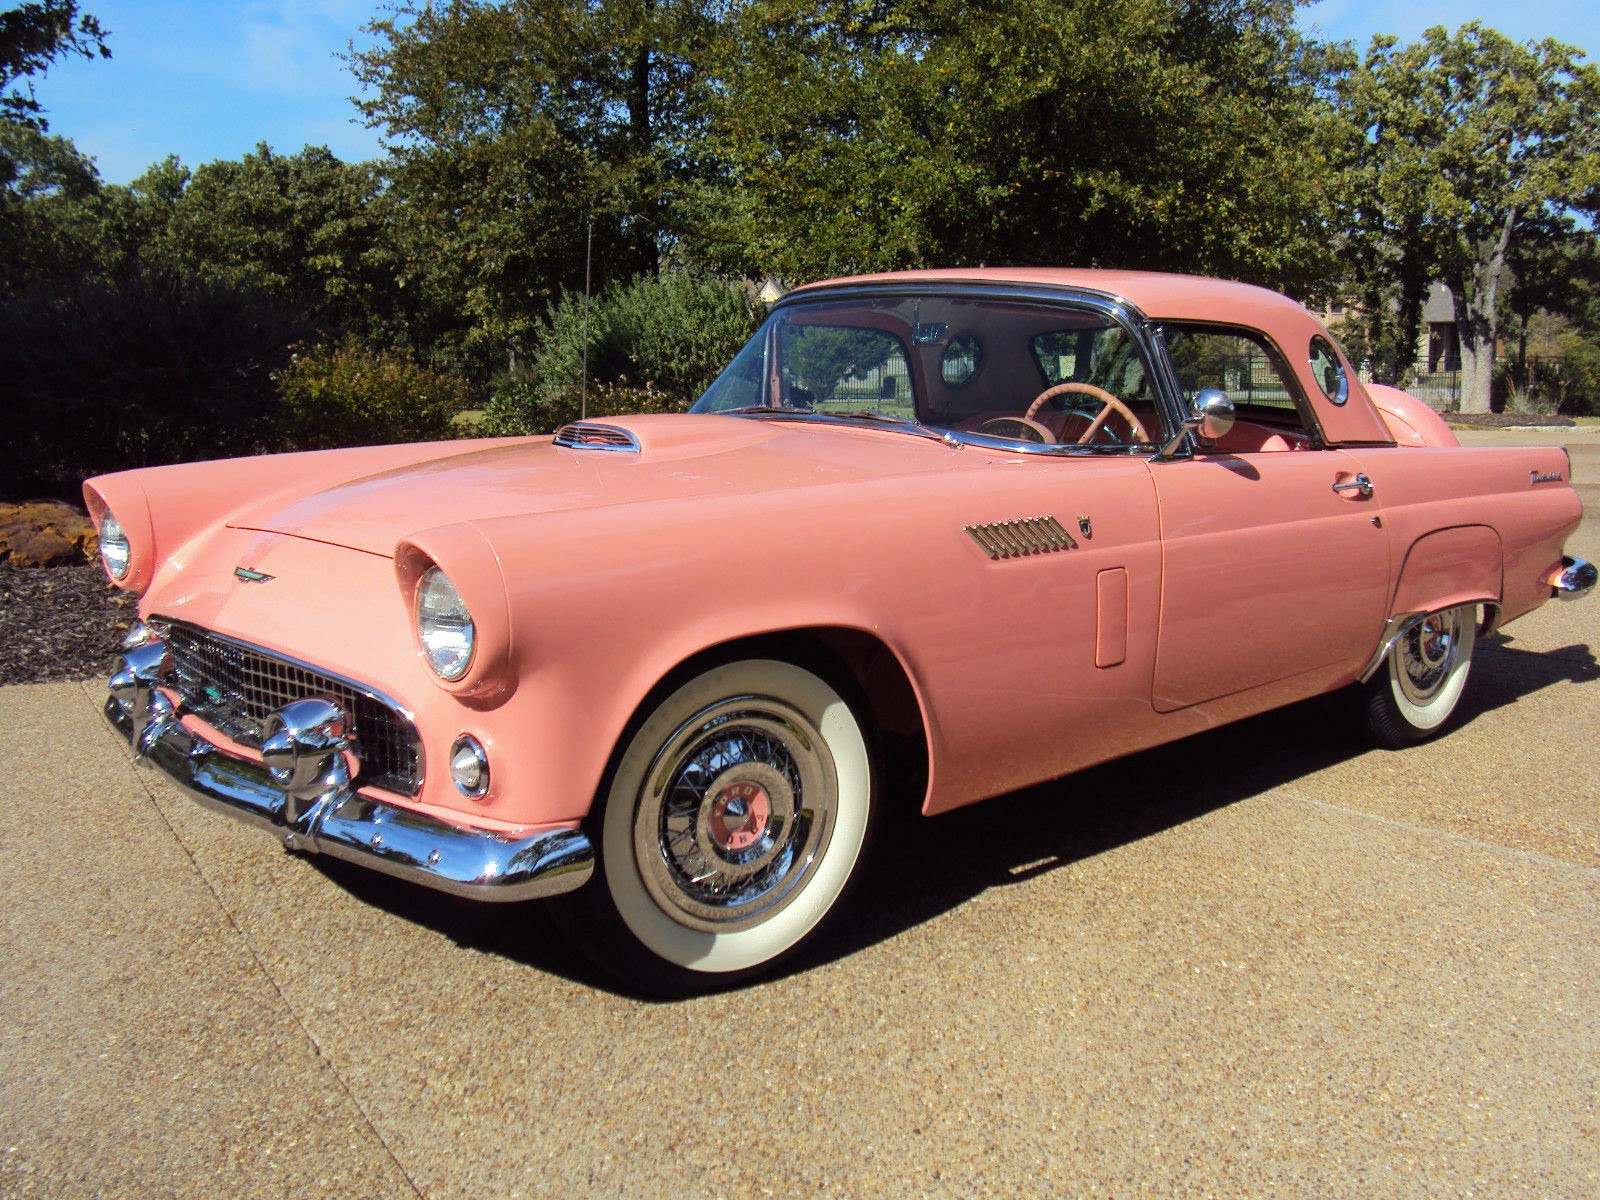 2015 Ford Thunderbird >> All American Classic Cars: 1956 Ford Thunderbird 2-Door ...